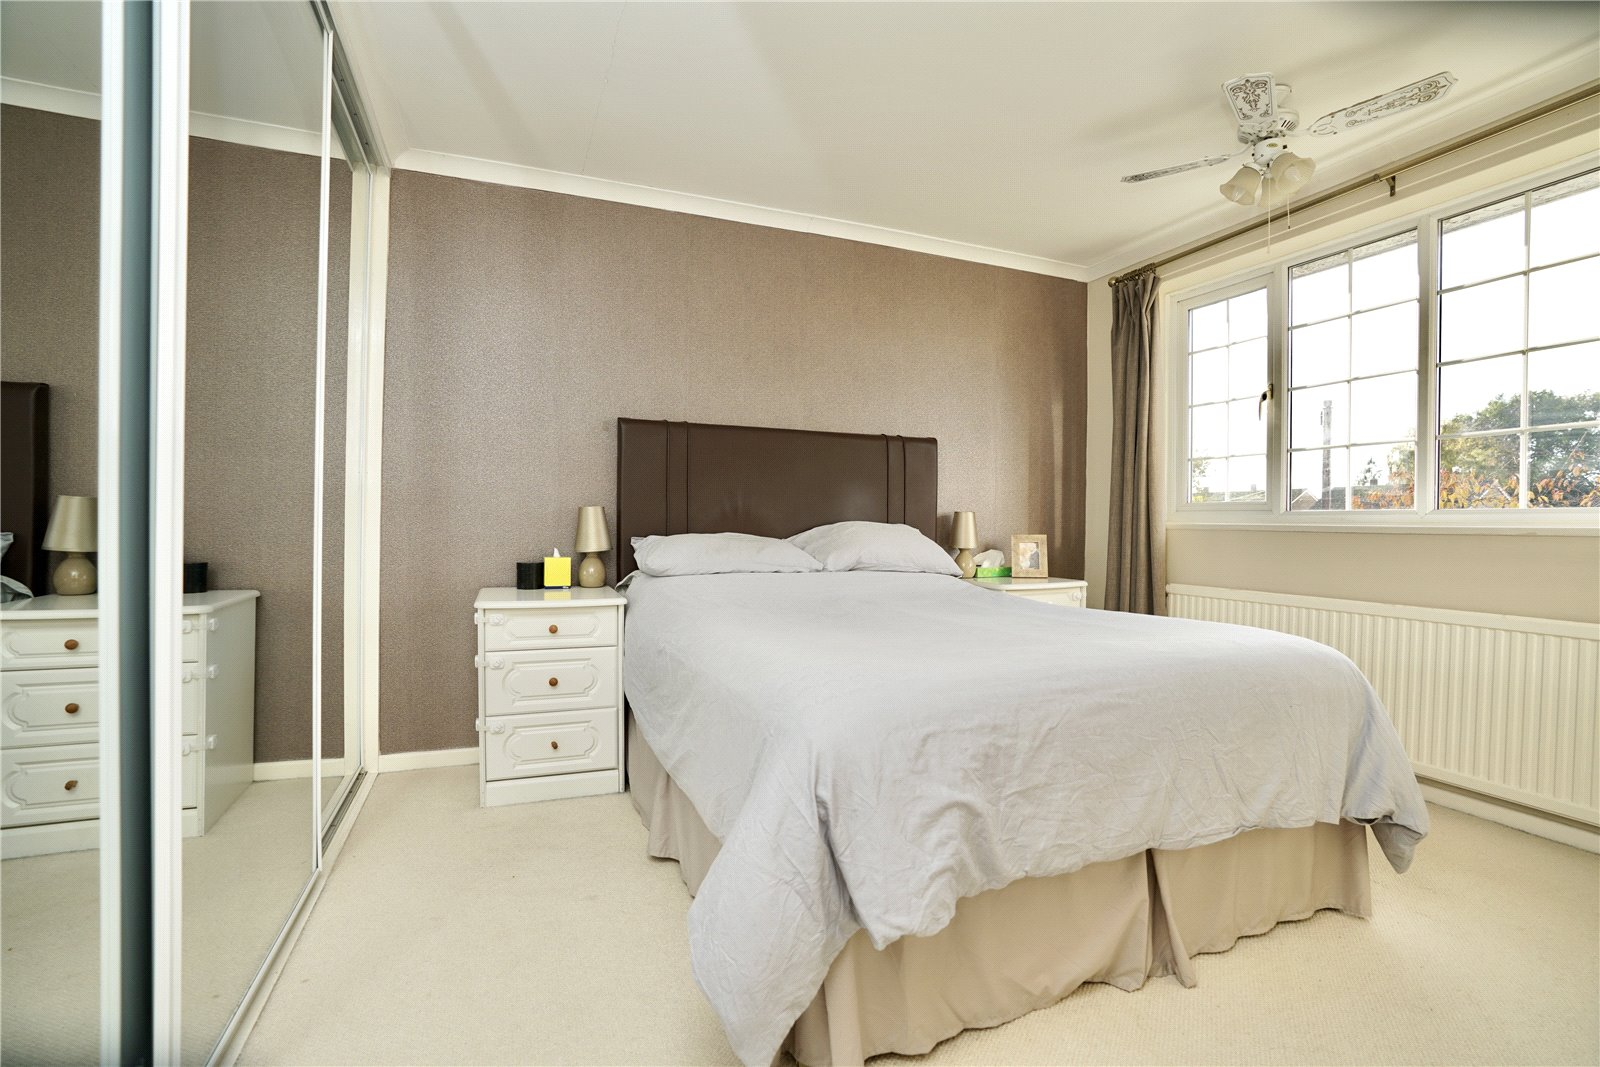 3 bed house for sale in Gordon Road, Little Paxton  - Property Image 8